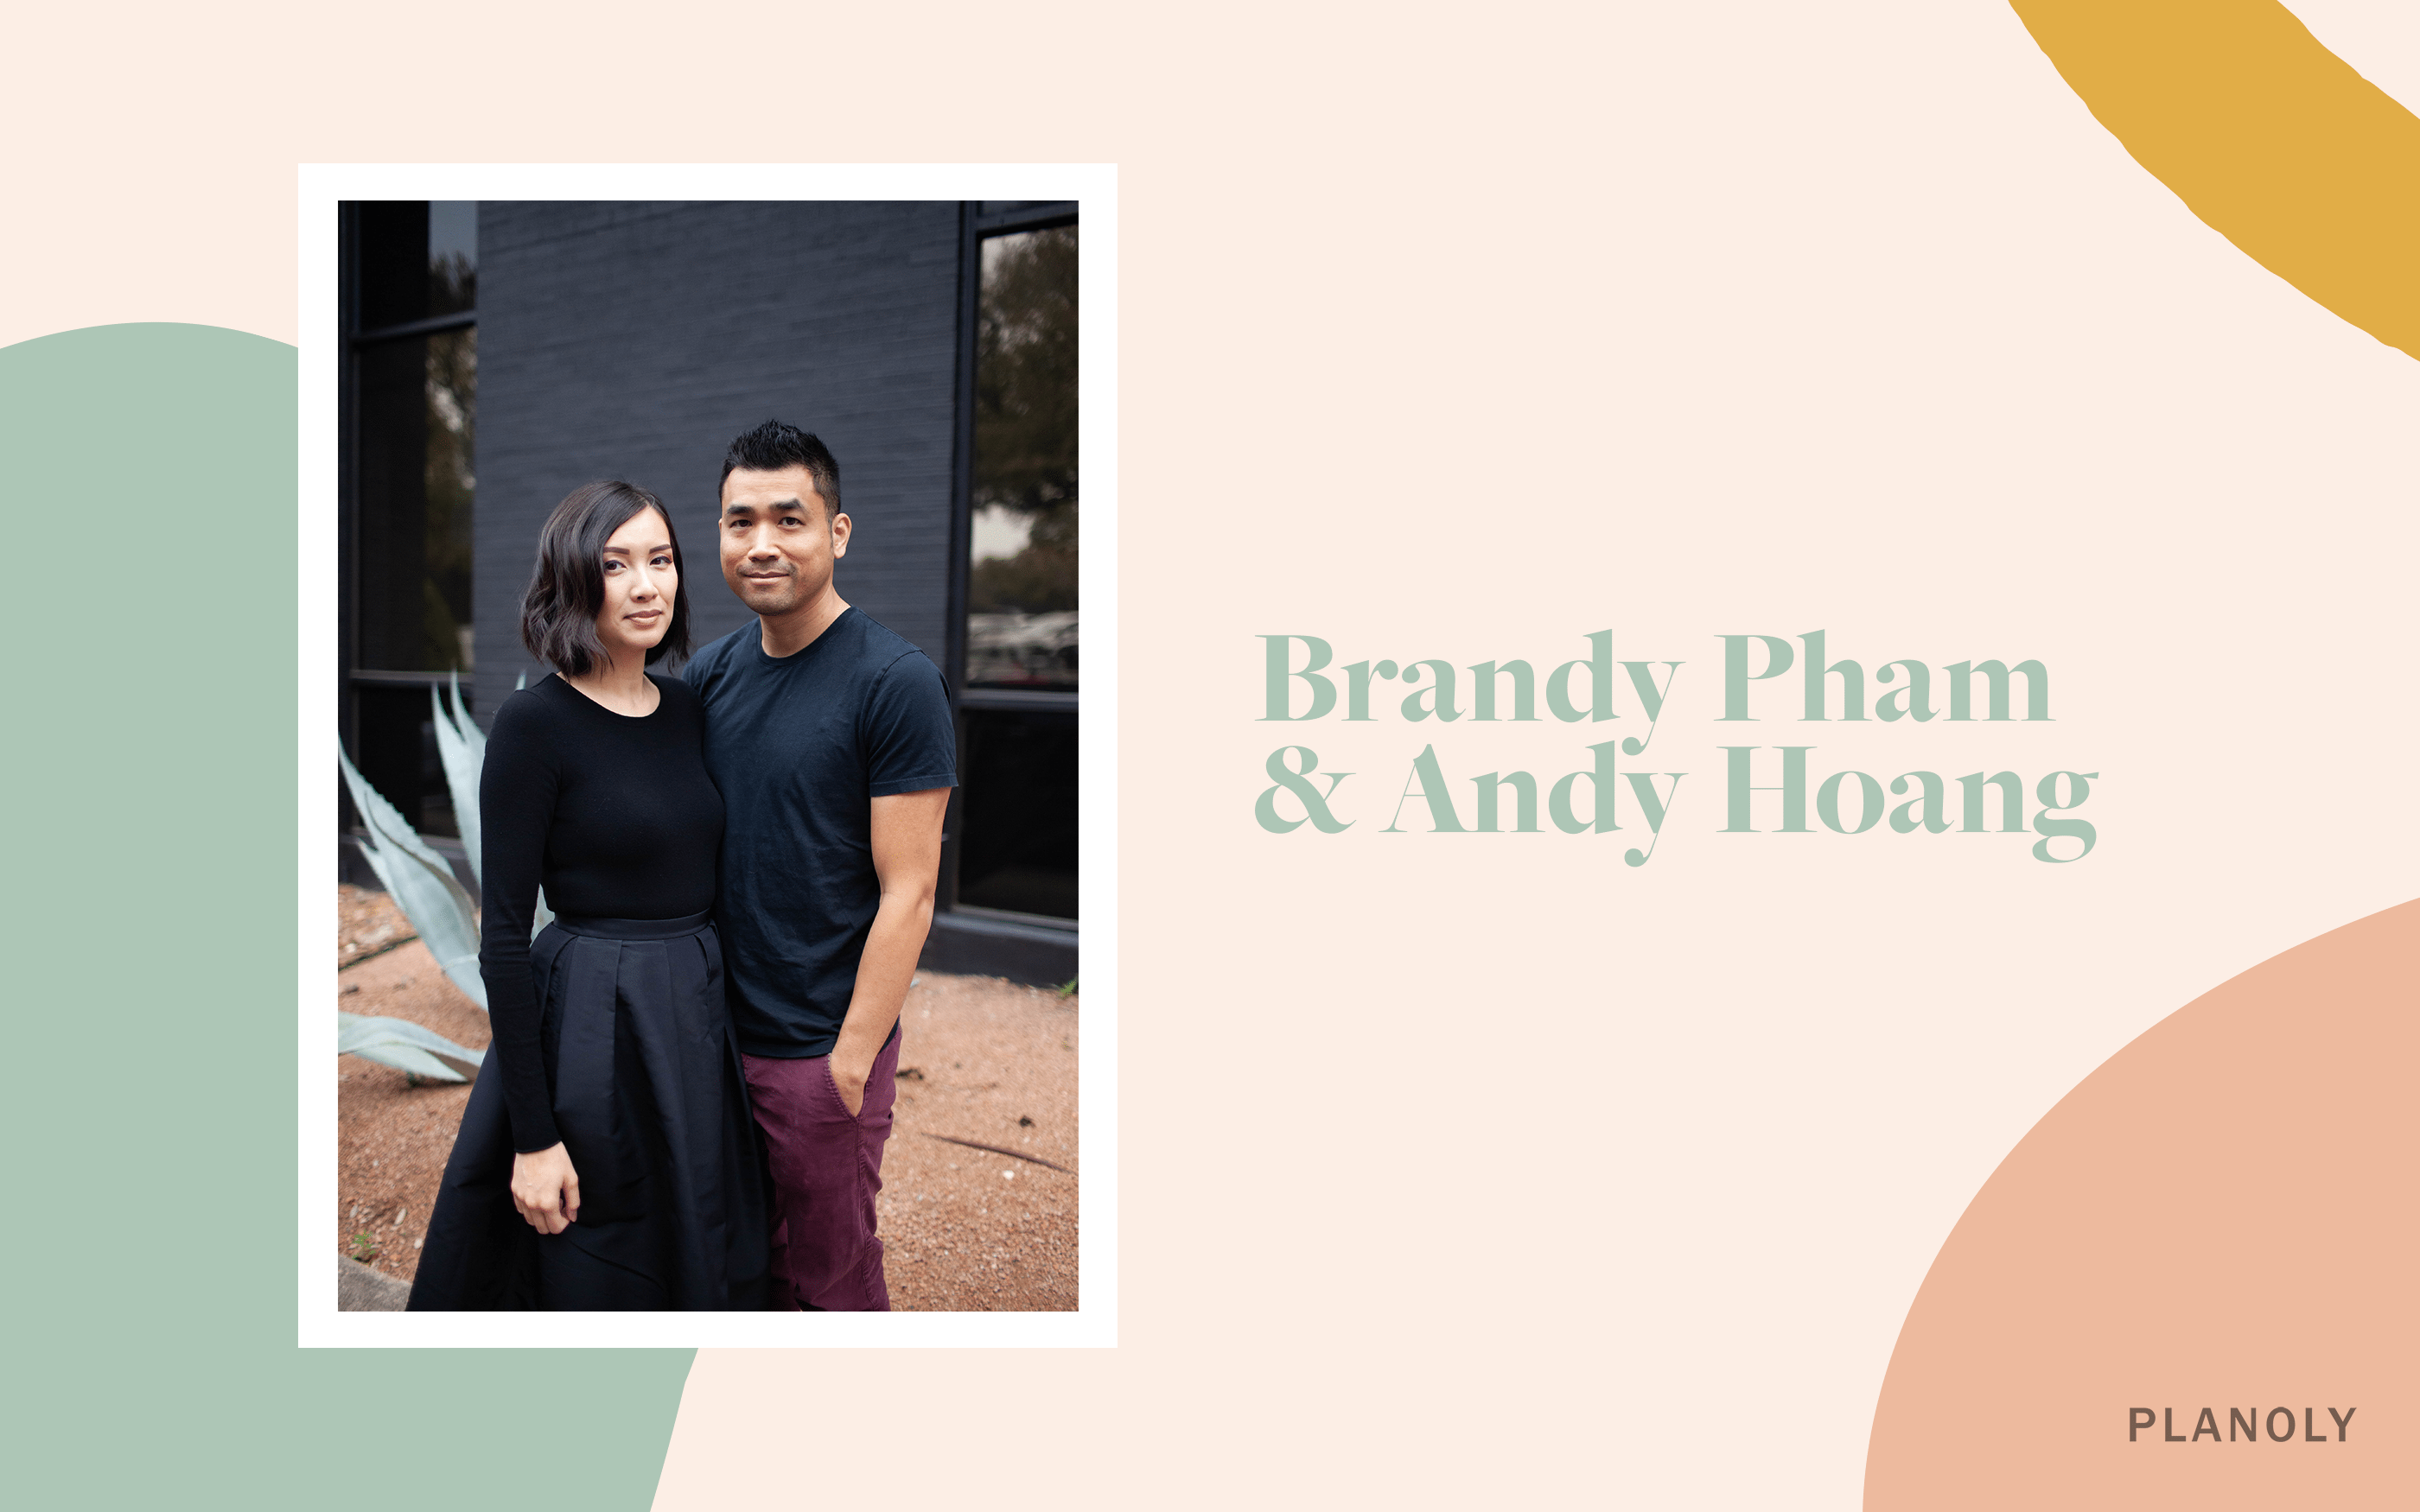 PLANOLY Announces $10,000 'Local Love Grant' for Austin-Based Small Businesses